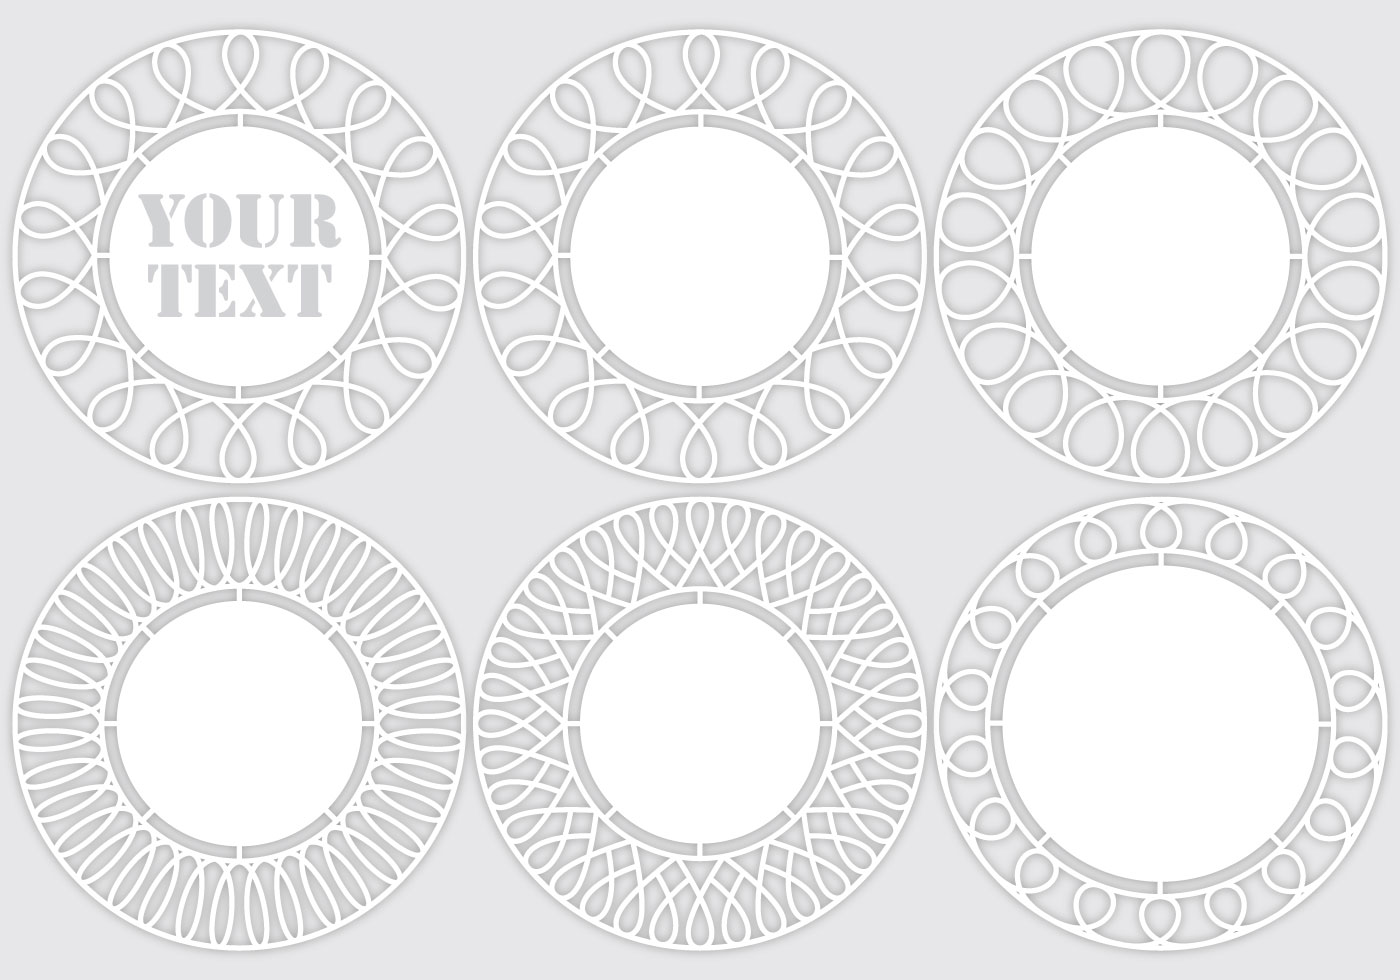 Laser Cut Templates - Download Free Vector Art, Stock Graphics ...